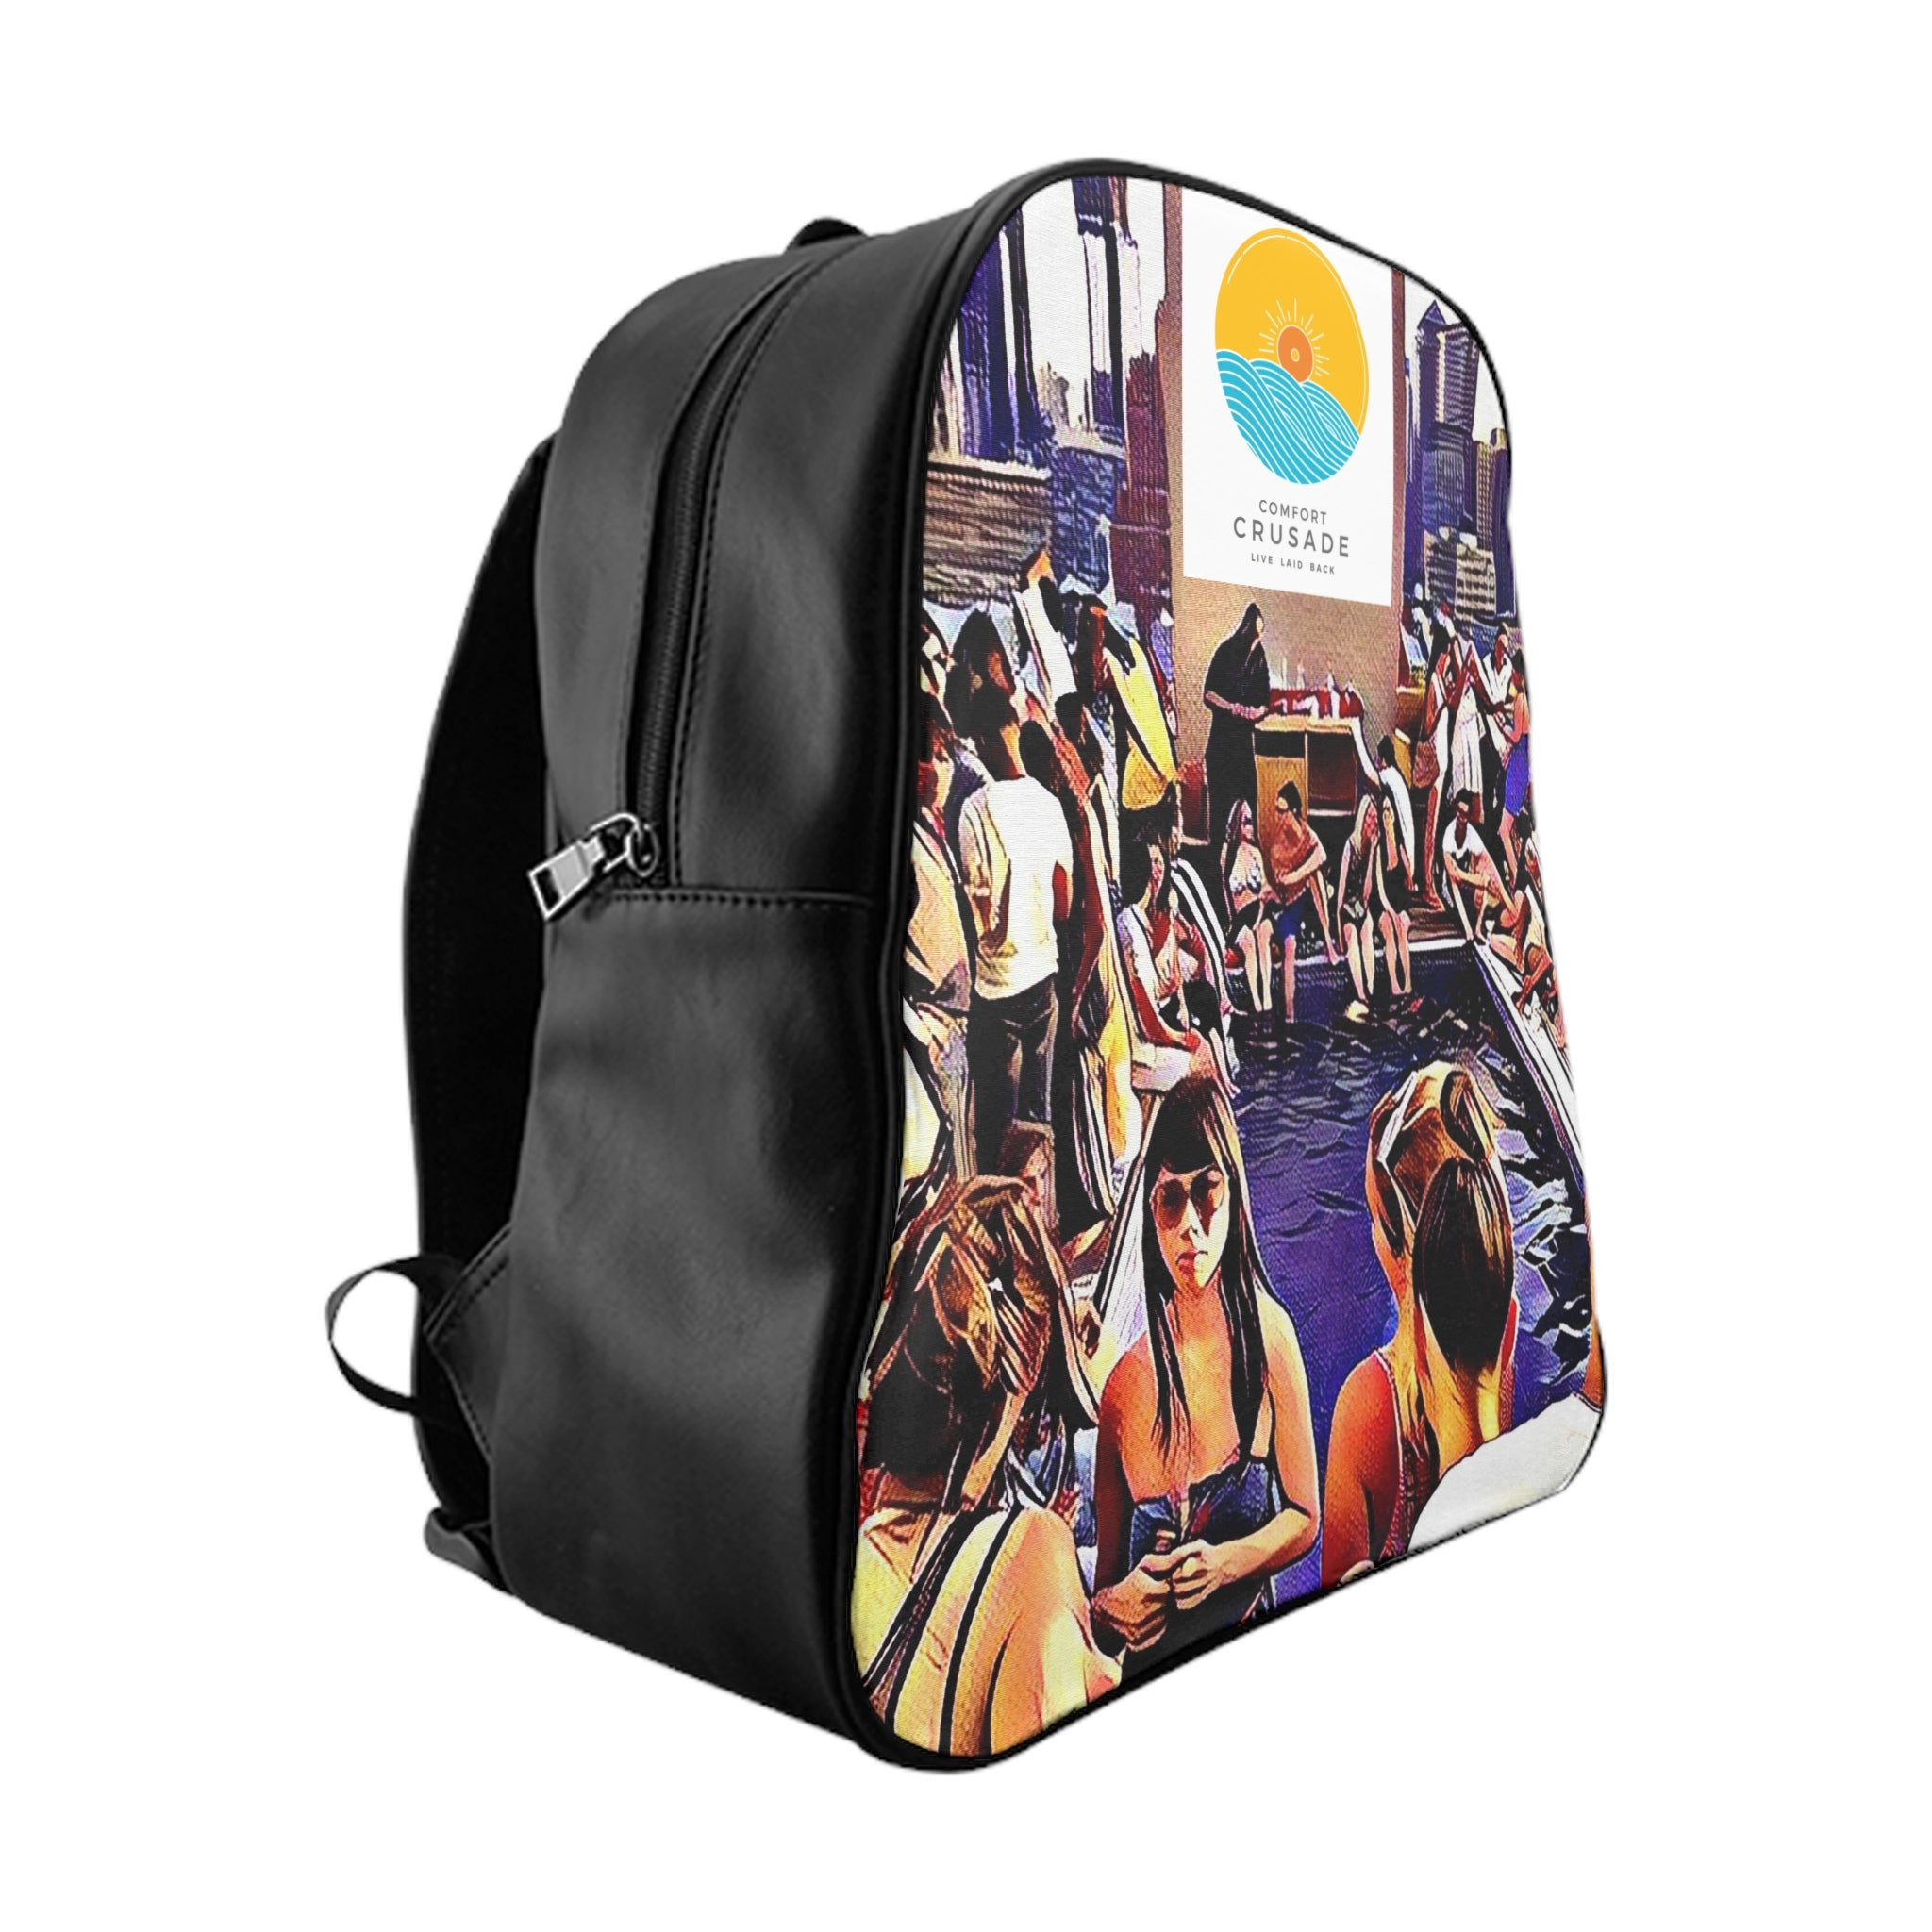 Comfort Crusade Rooftop Life Backpack - The Comfort Crusade Shopping Lounge